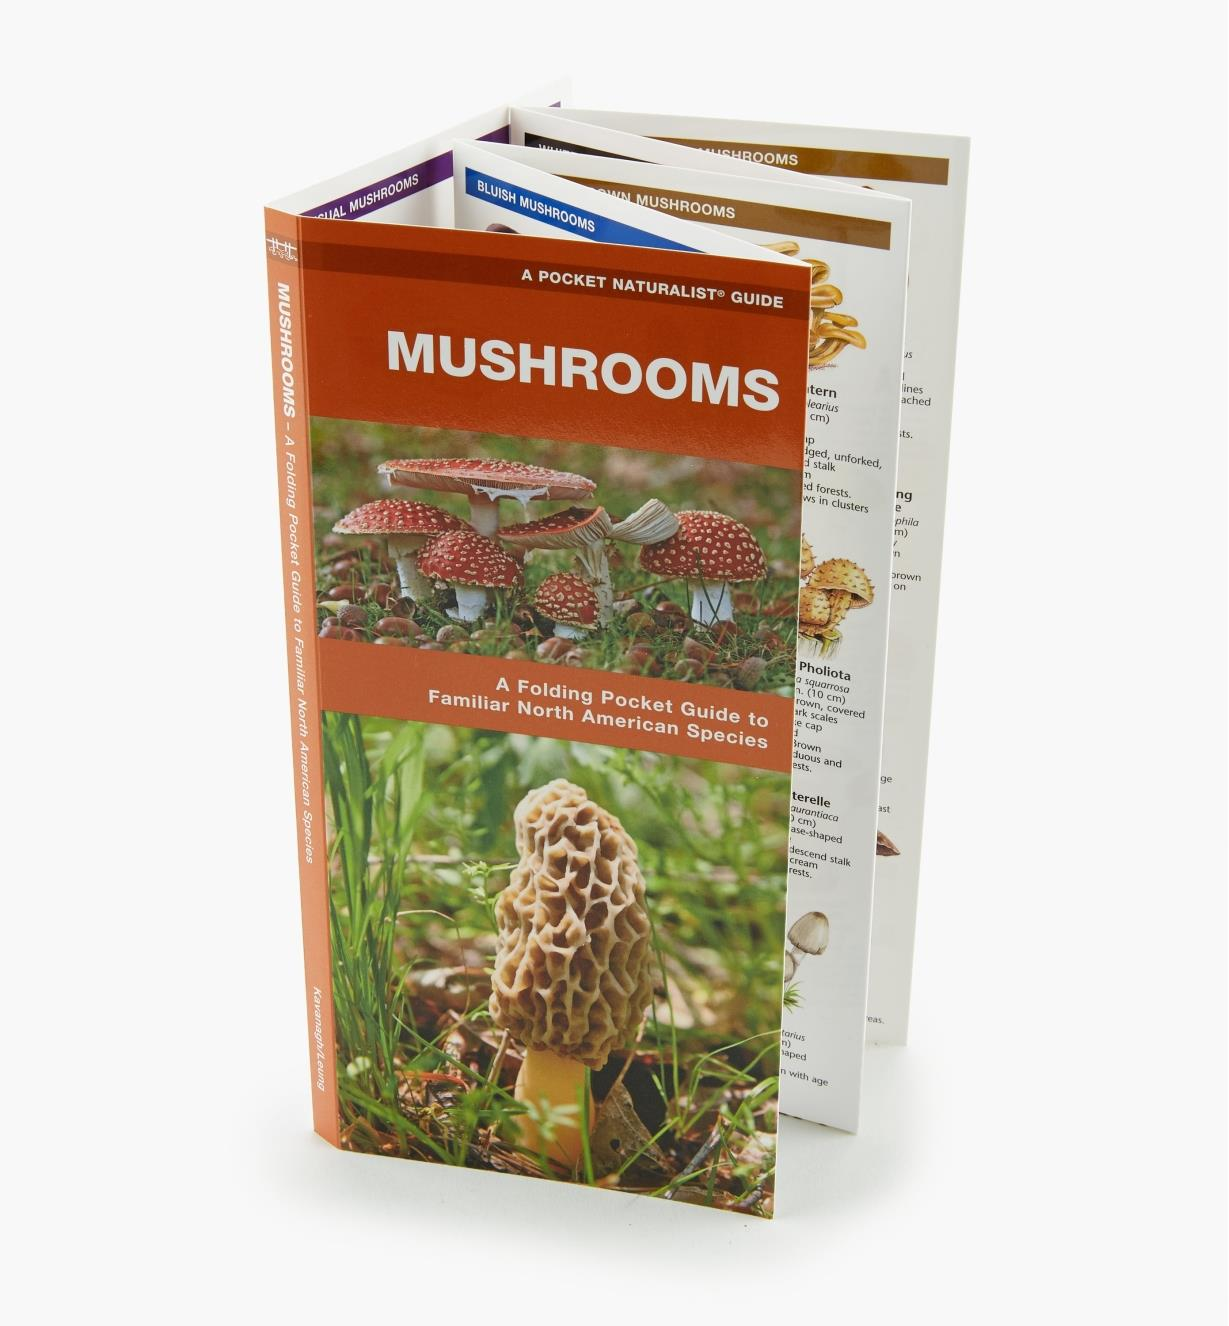 LA256 - Mushrooms Pocket Guide